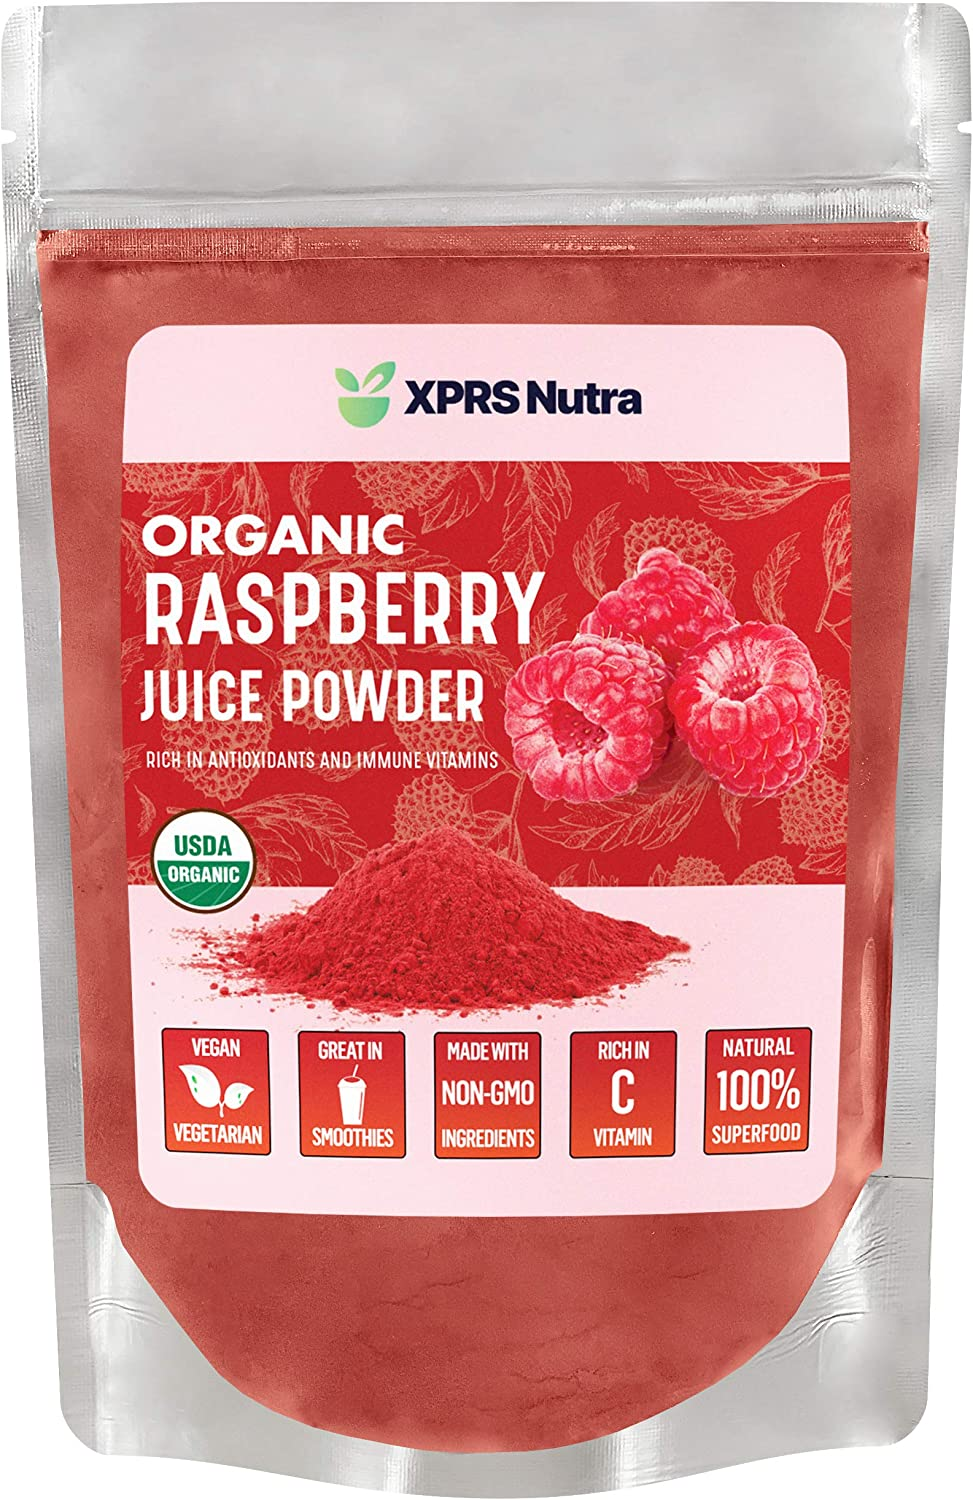 XPRS Nutra Organic Raspberry Juice Powder - Raspberry Powder Supplement - Raspberry Juice Powder Organic Fruit - Immune System Support with Vitamin C - Vegan Smoothie and Drink Supplement - (8 oz)